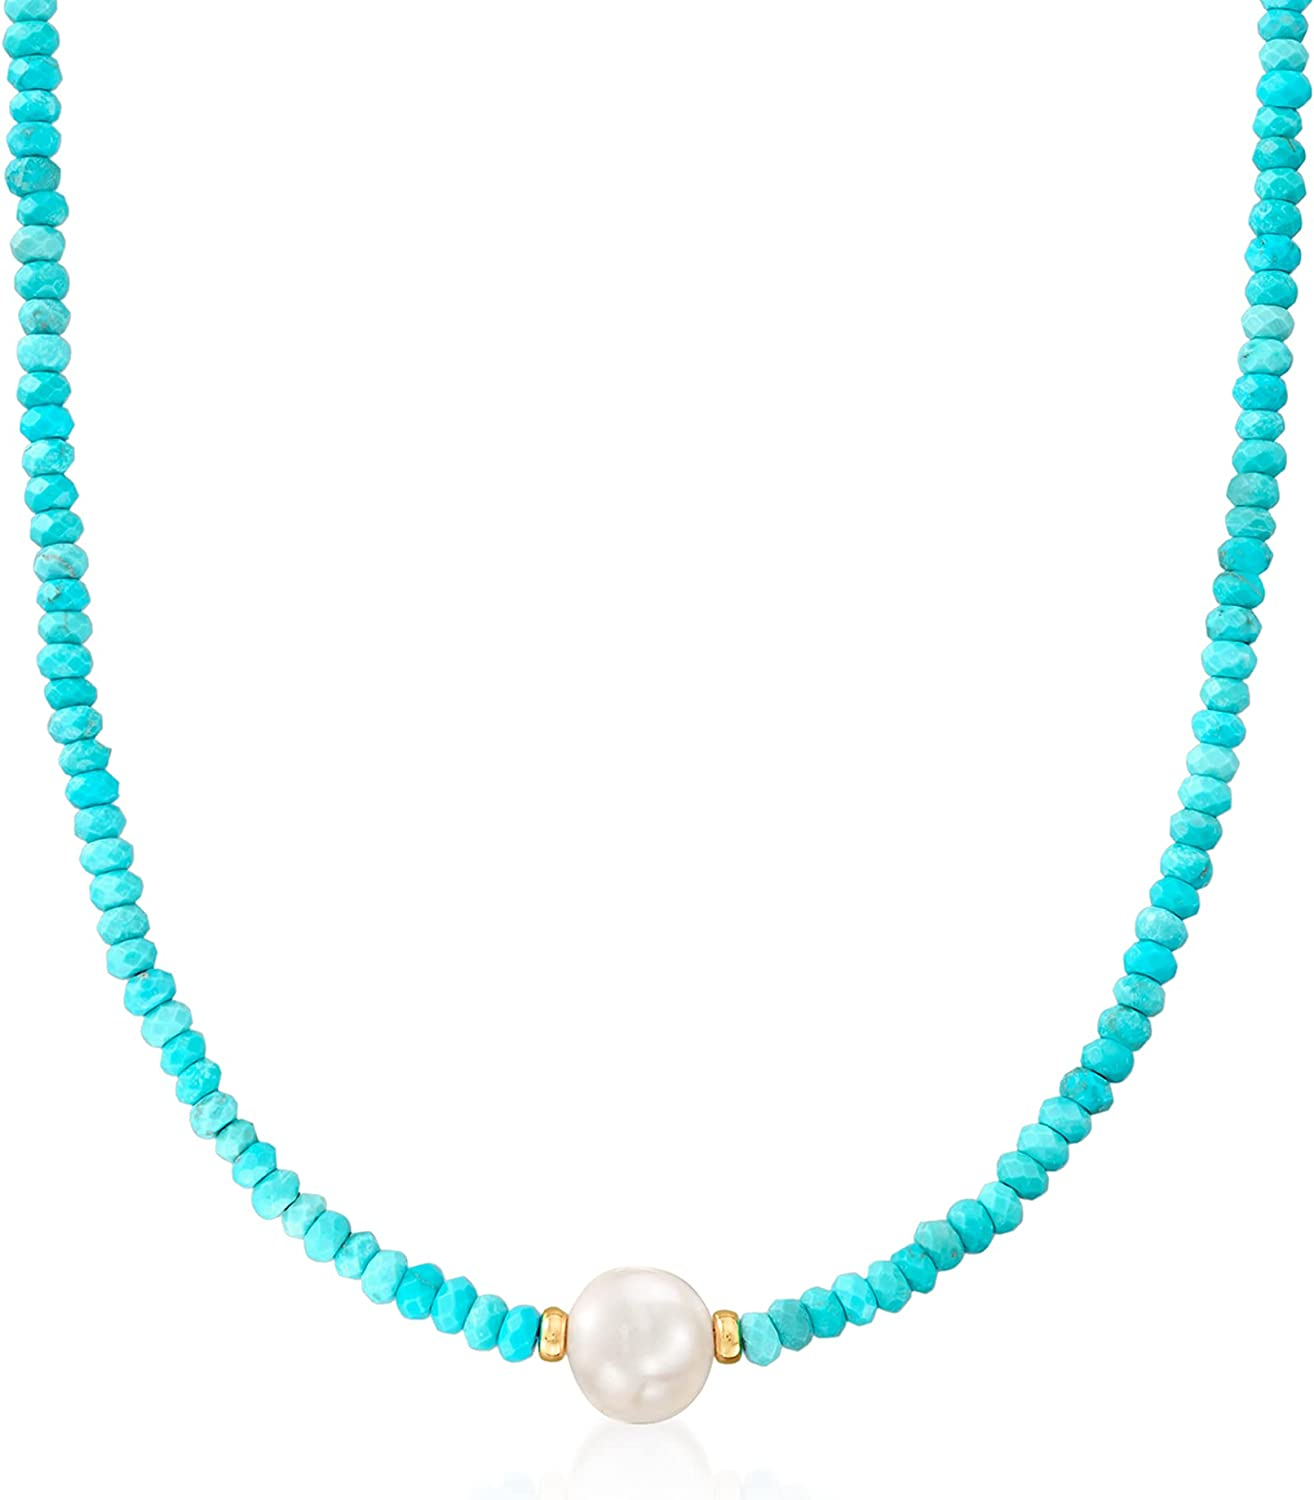 Ross-Simons 11.5-12.5mm Cultured Pearl and 4-5mm Turquoise Bead Necklace With 14kt Yellow Gold